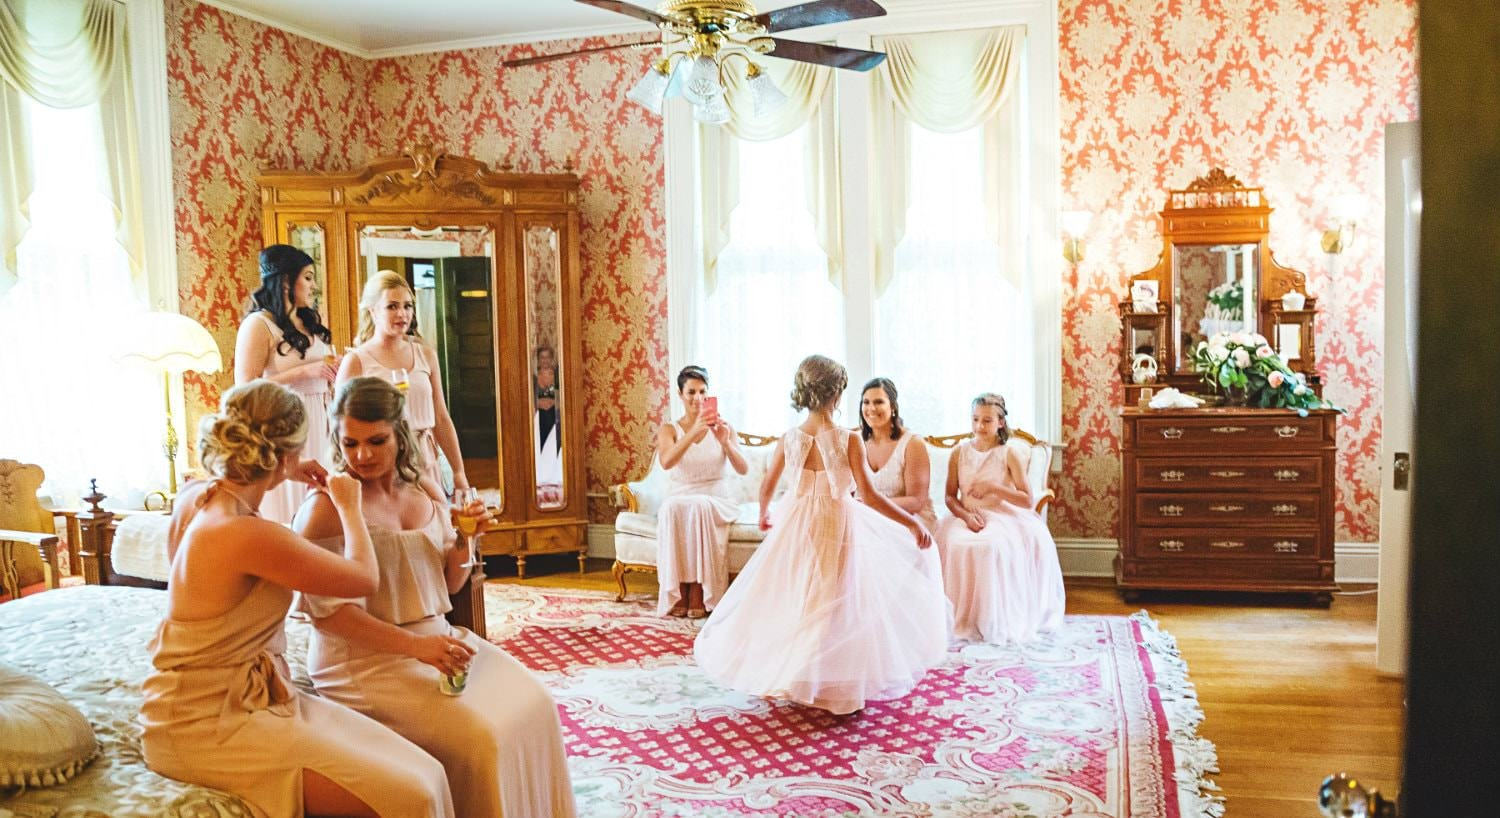 Brightly lit room with a bride in a white dress and several bridesmaids and flower girls in blush dresses